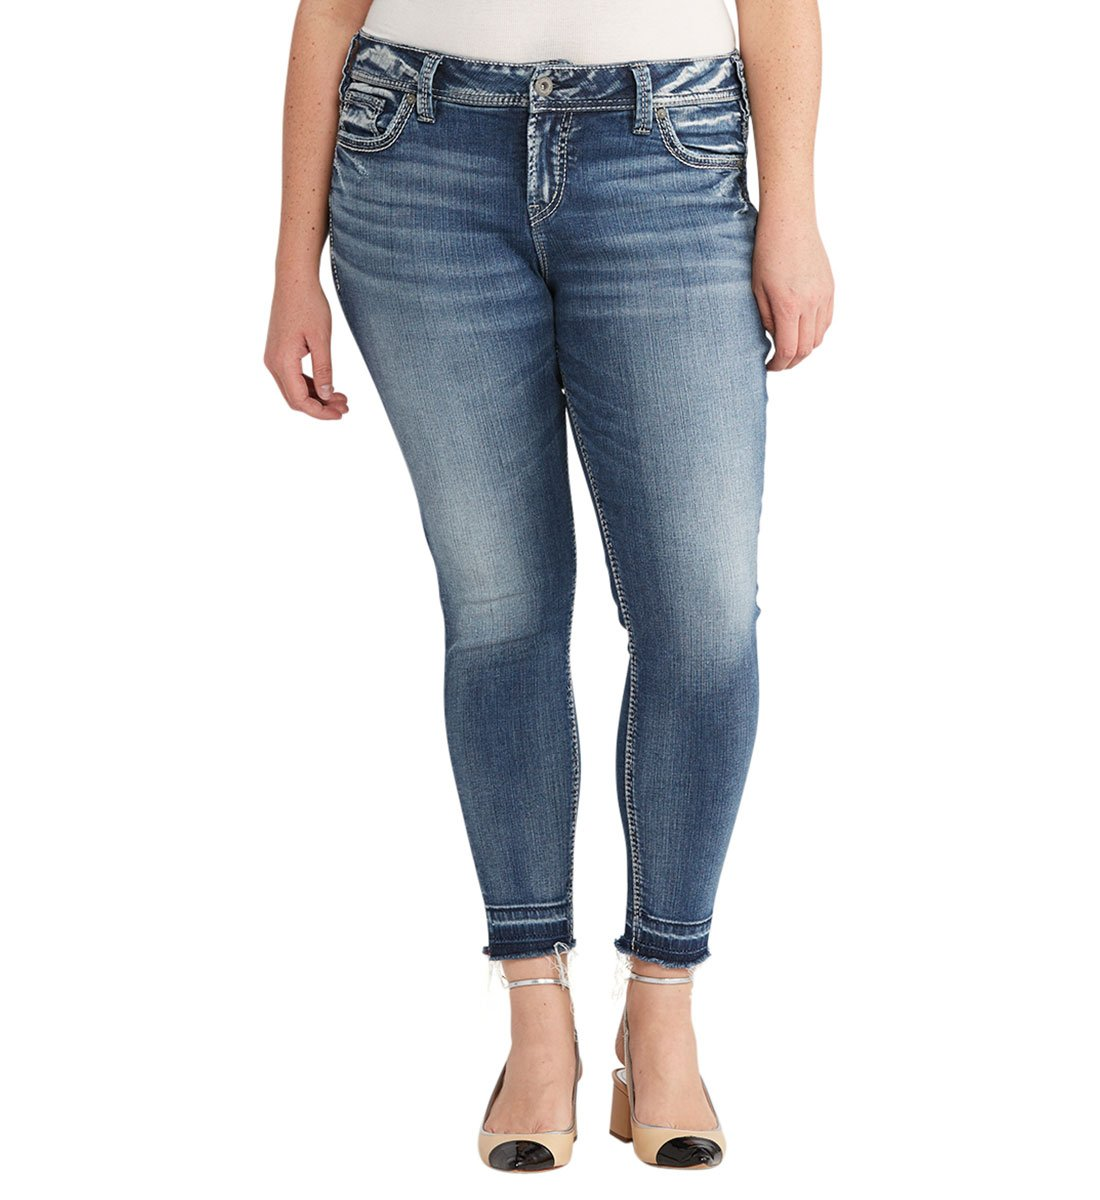 Silver Jeans Women's Plus Size Elyse Eased Curve Mid Ankle Skinny Light Jean, Medium Wash Released Hem, 16X27 by Silver Jeans Co.